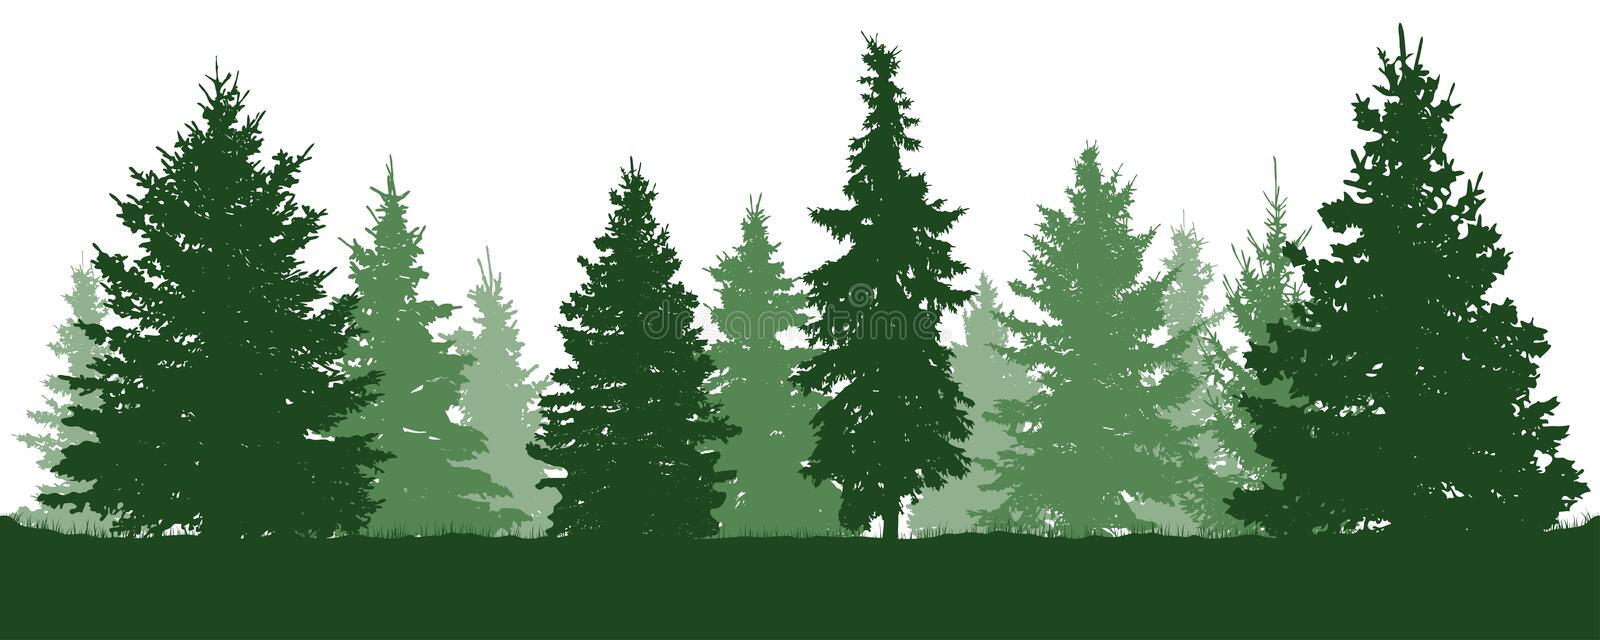 Forest fir trees silhouette. Coniferous green spruce. Vector on white background. stock illustration